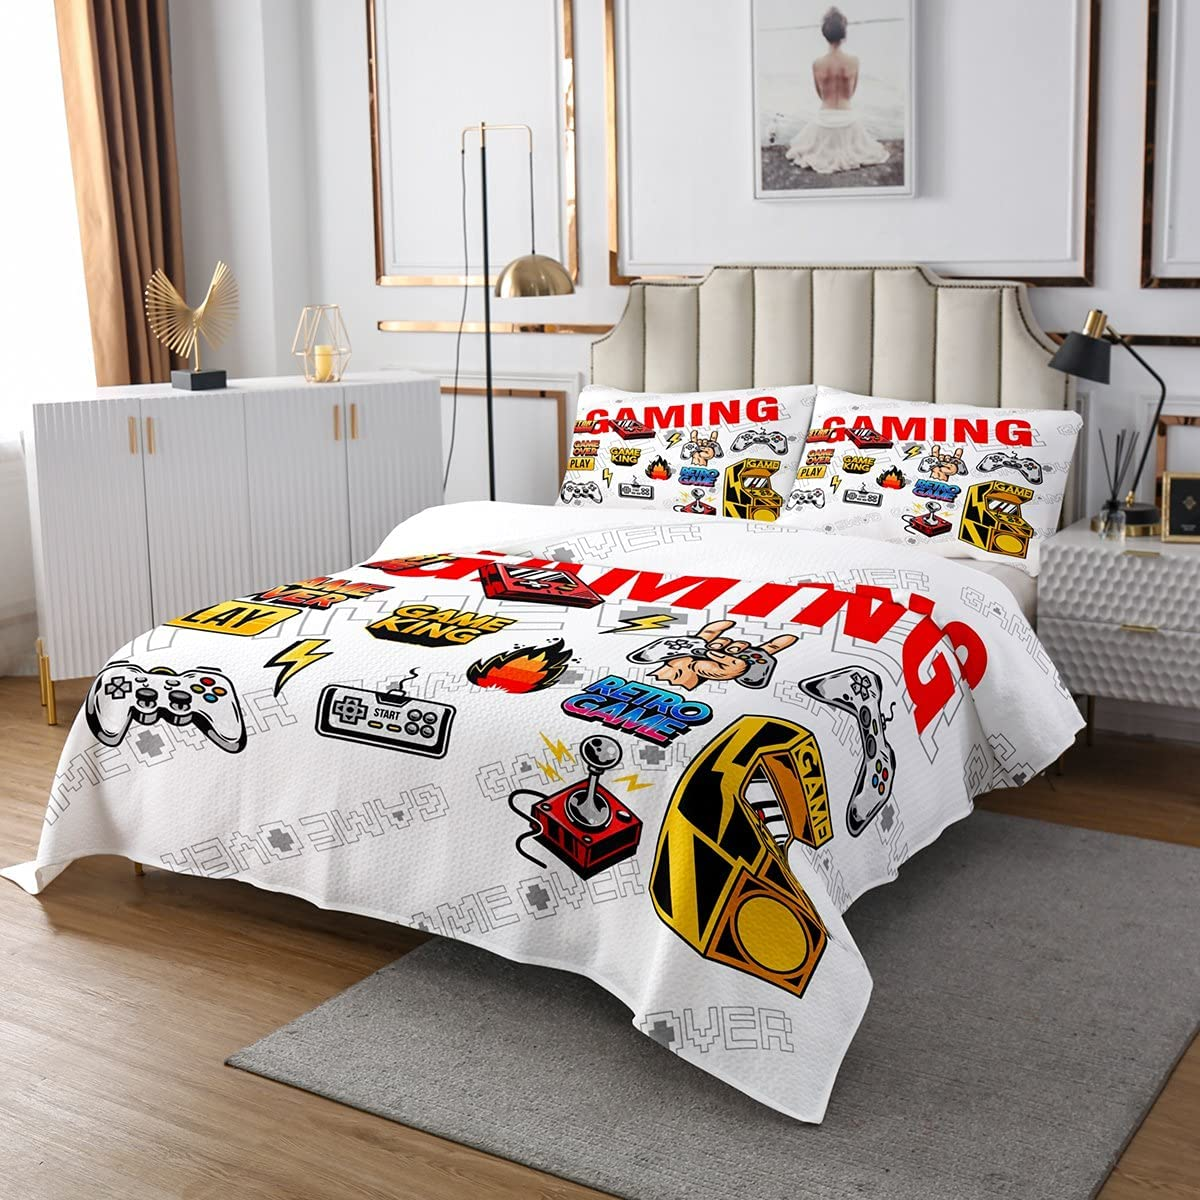 Gameing Super popular specialty store Quilted Coverlet Set Gamer Sale Boys Kids Bedspread Game for